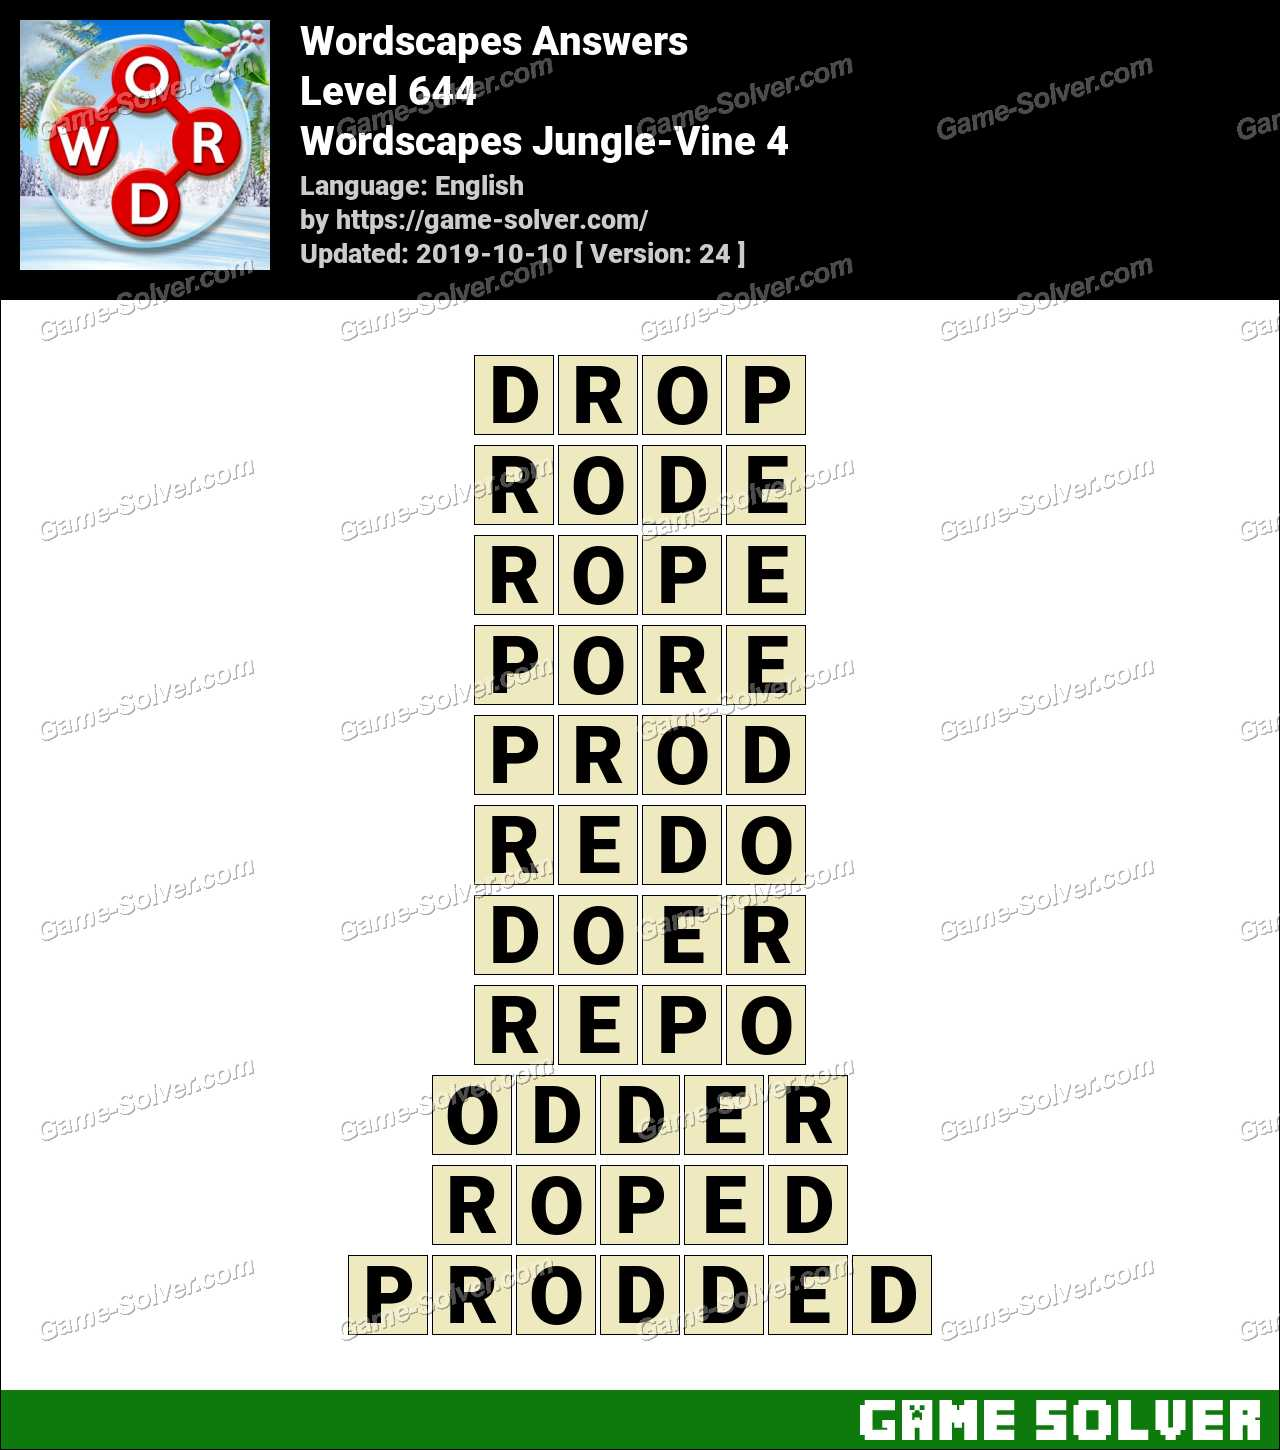 Wordscapes Jungle-Vine 4 Answers